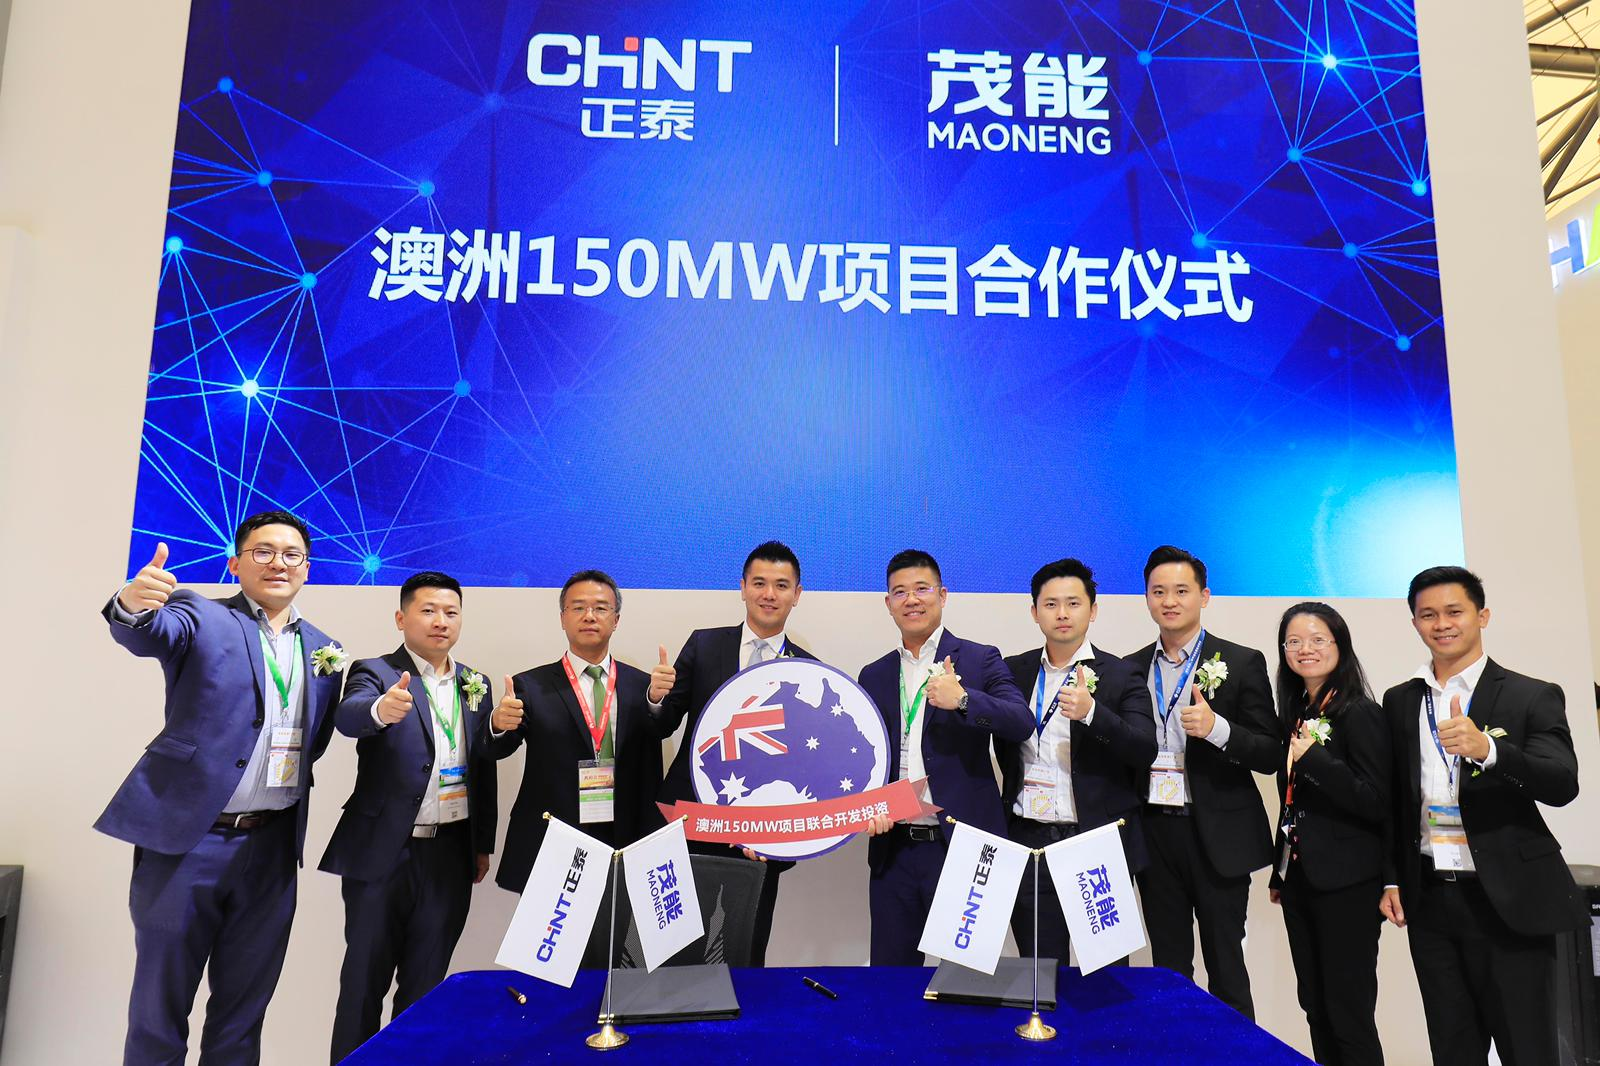 Maoneng and CHINT partnership announcement